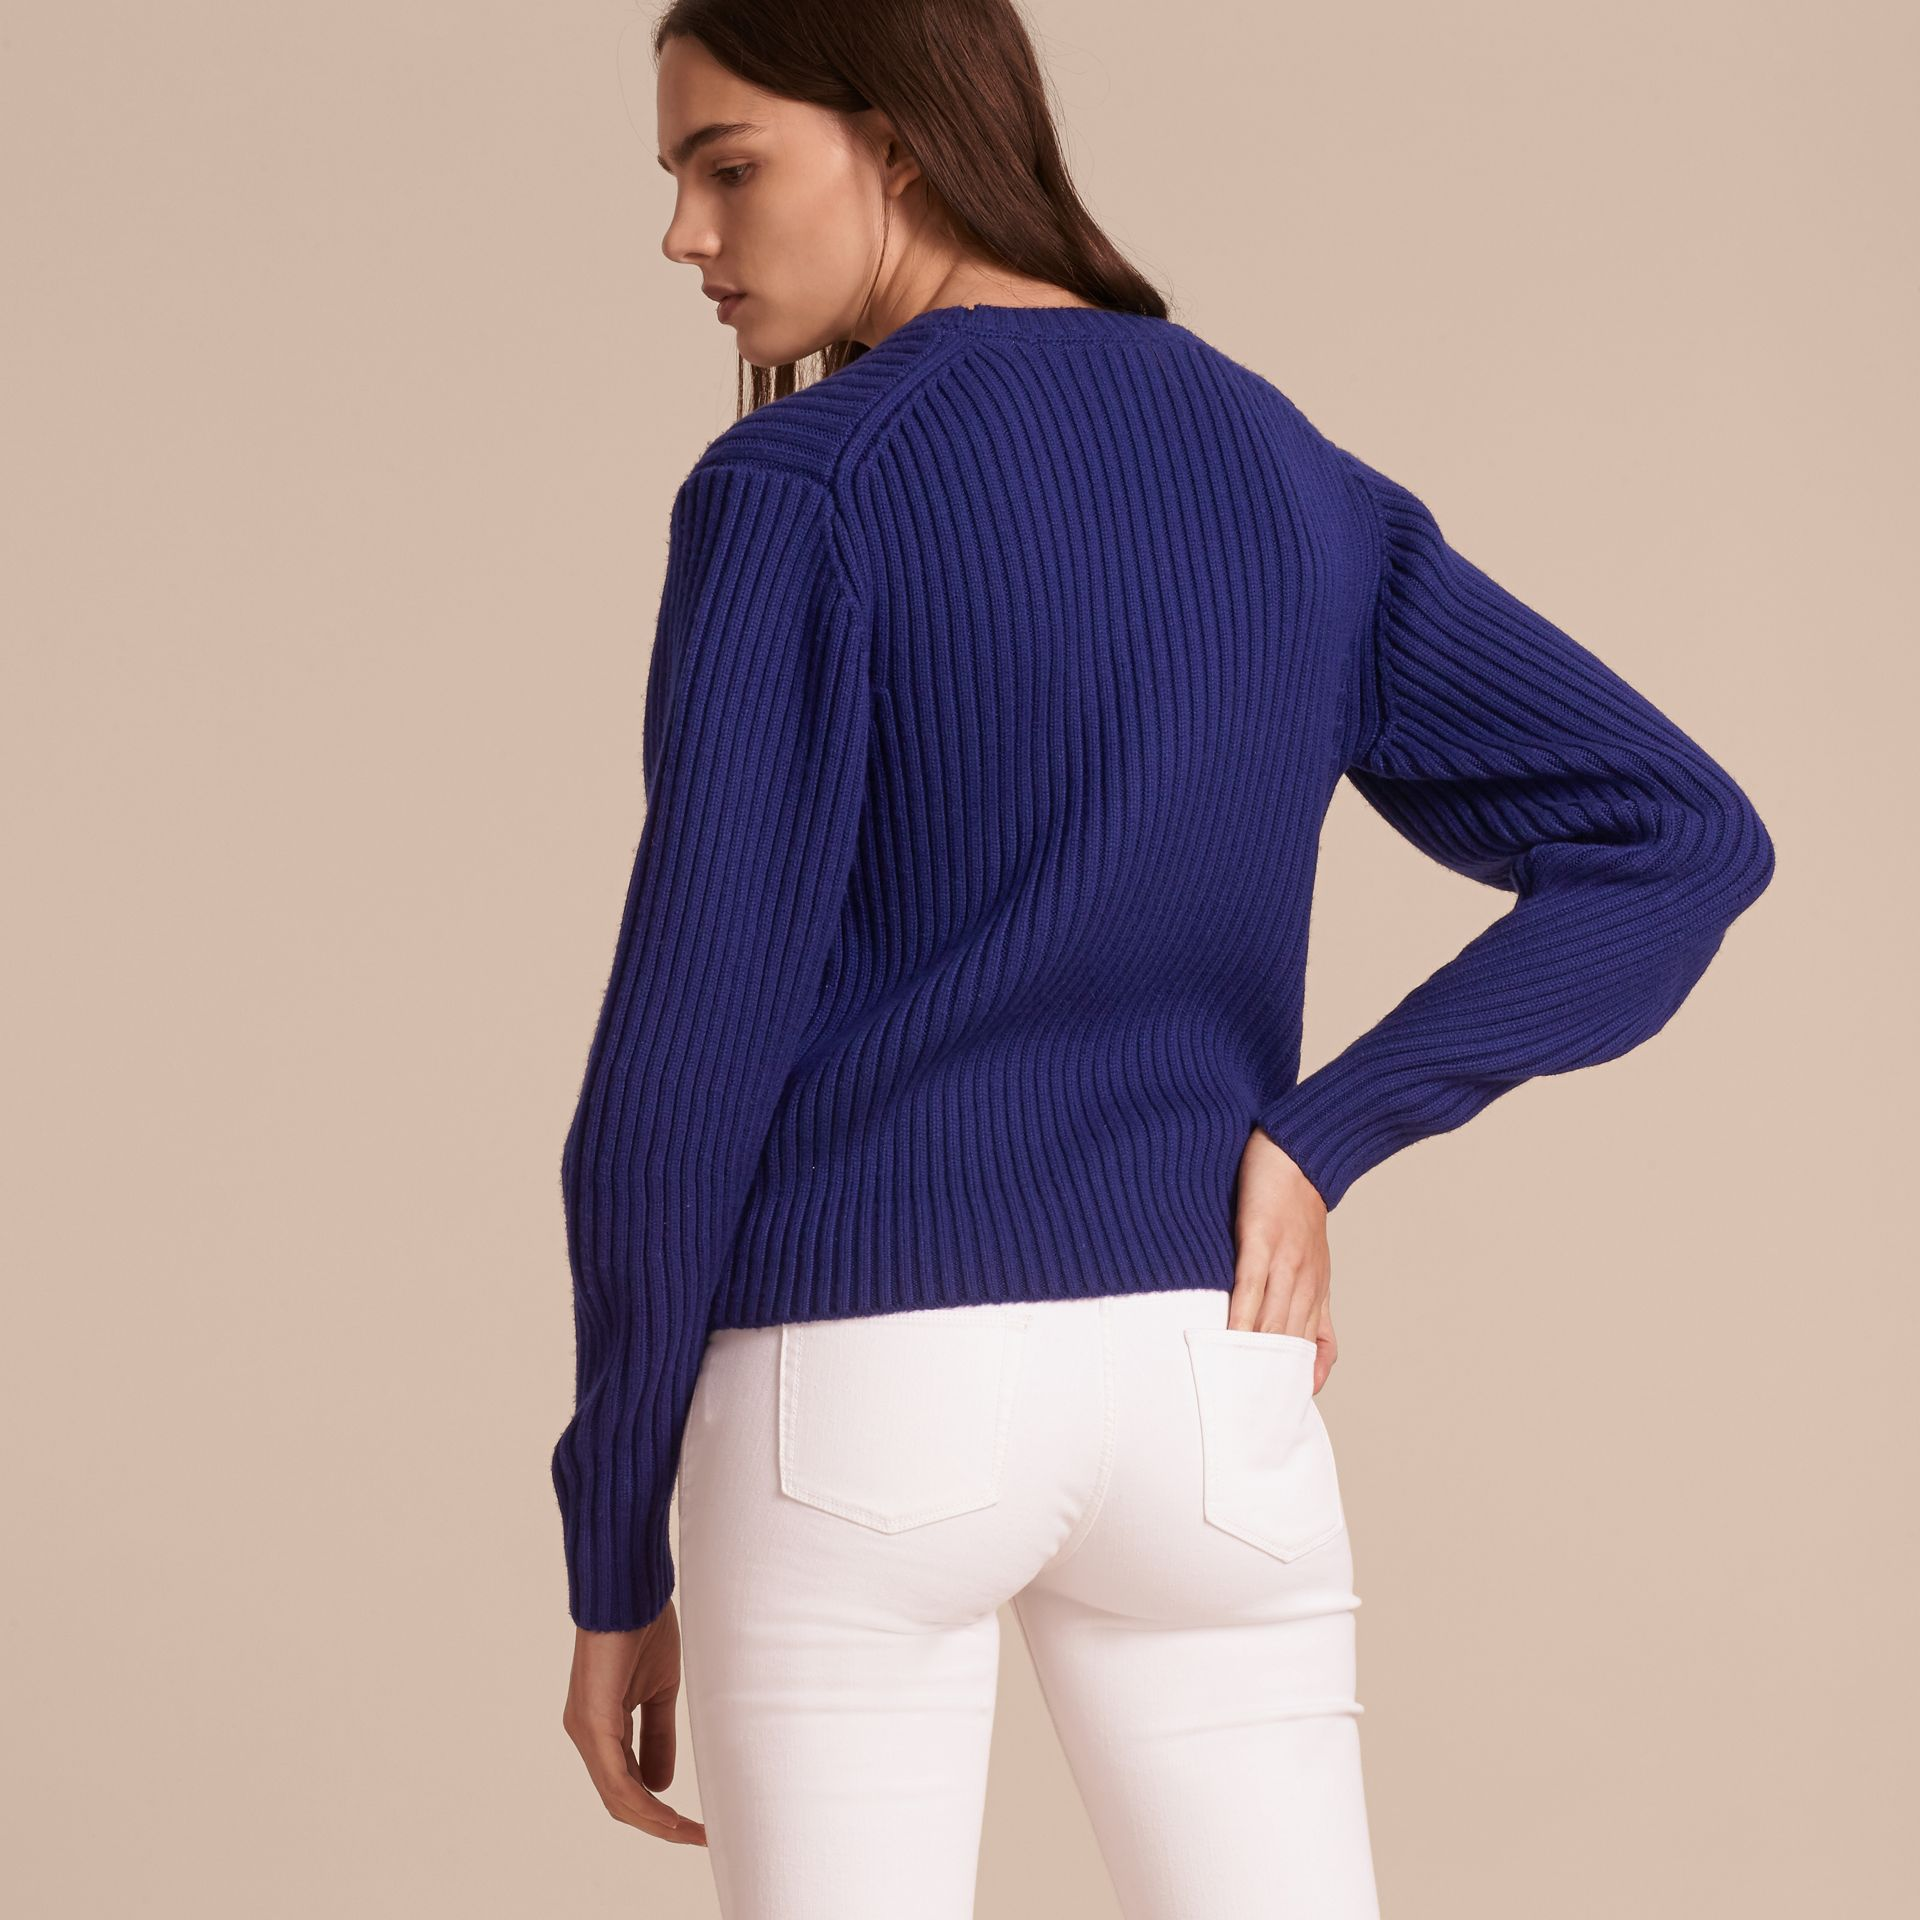 Oversize Pocket Detail Rib Knit Cashmere Cotton Sweater in Bright Navy - Women | Burberry - gallery image 3